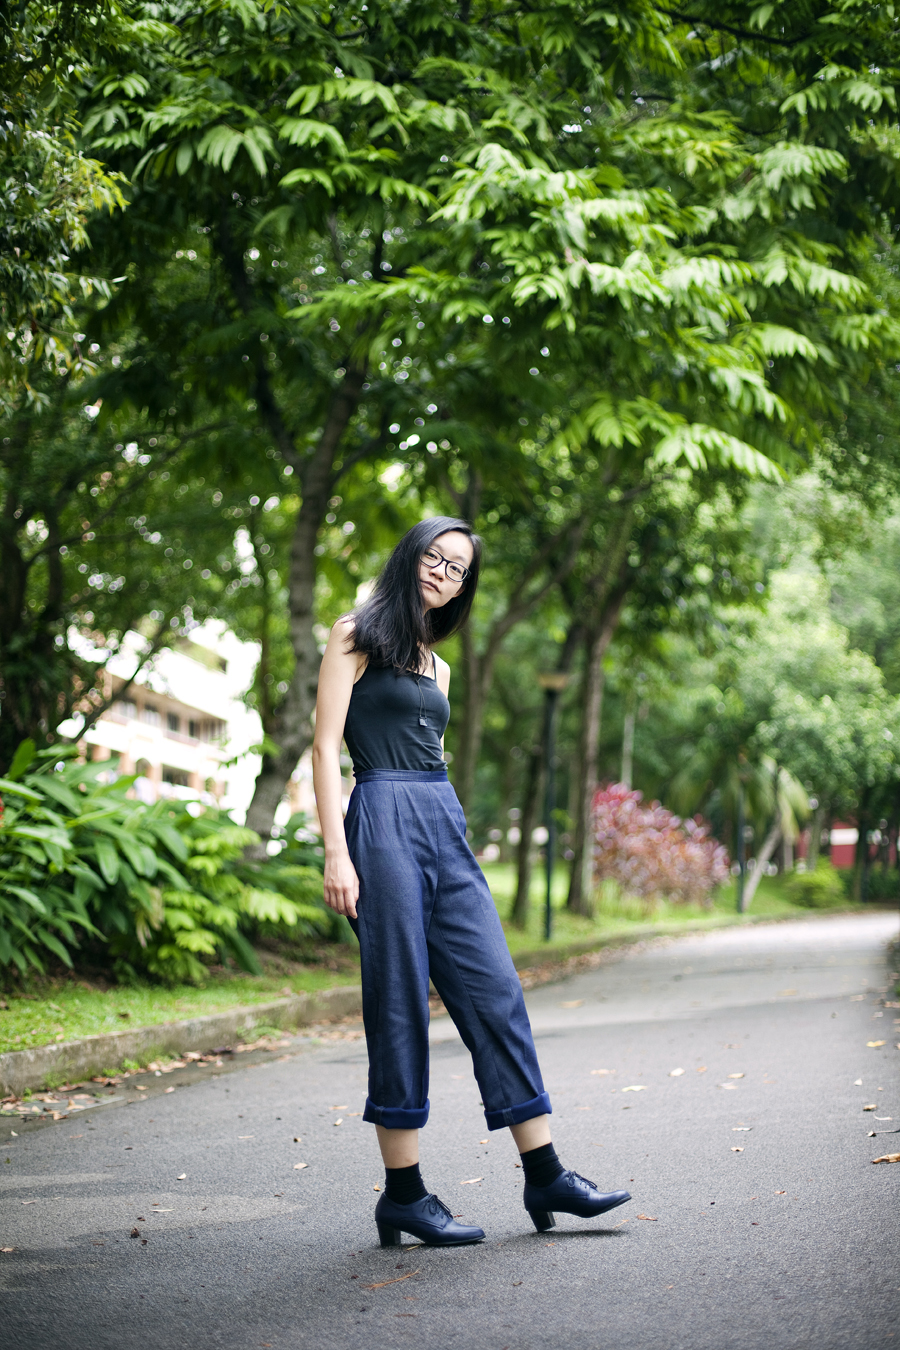 Outfit of the day (#ootd): Uniqlo black bratop, vintage navy pants, Taobao black socks, Taobao navy oxford heels, Gap black rim glasses, black square pendant necklace from Bangkok.